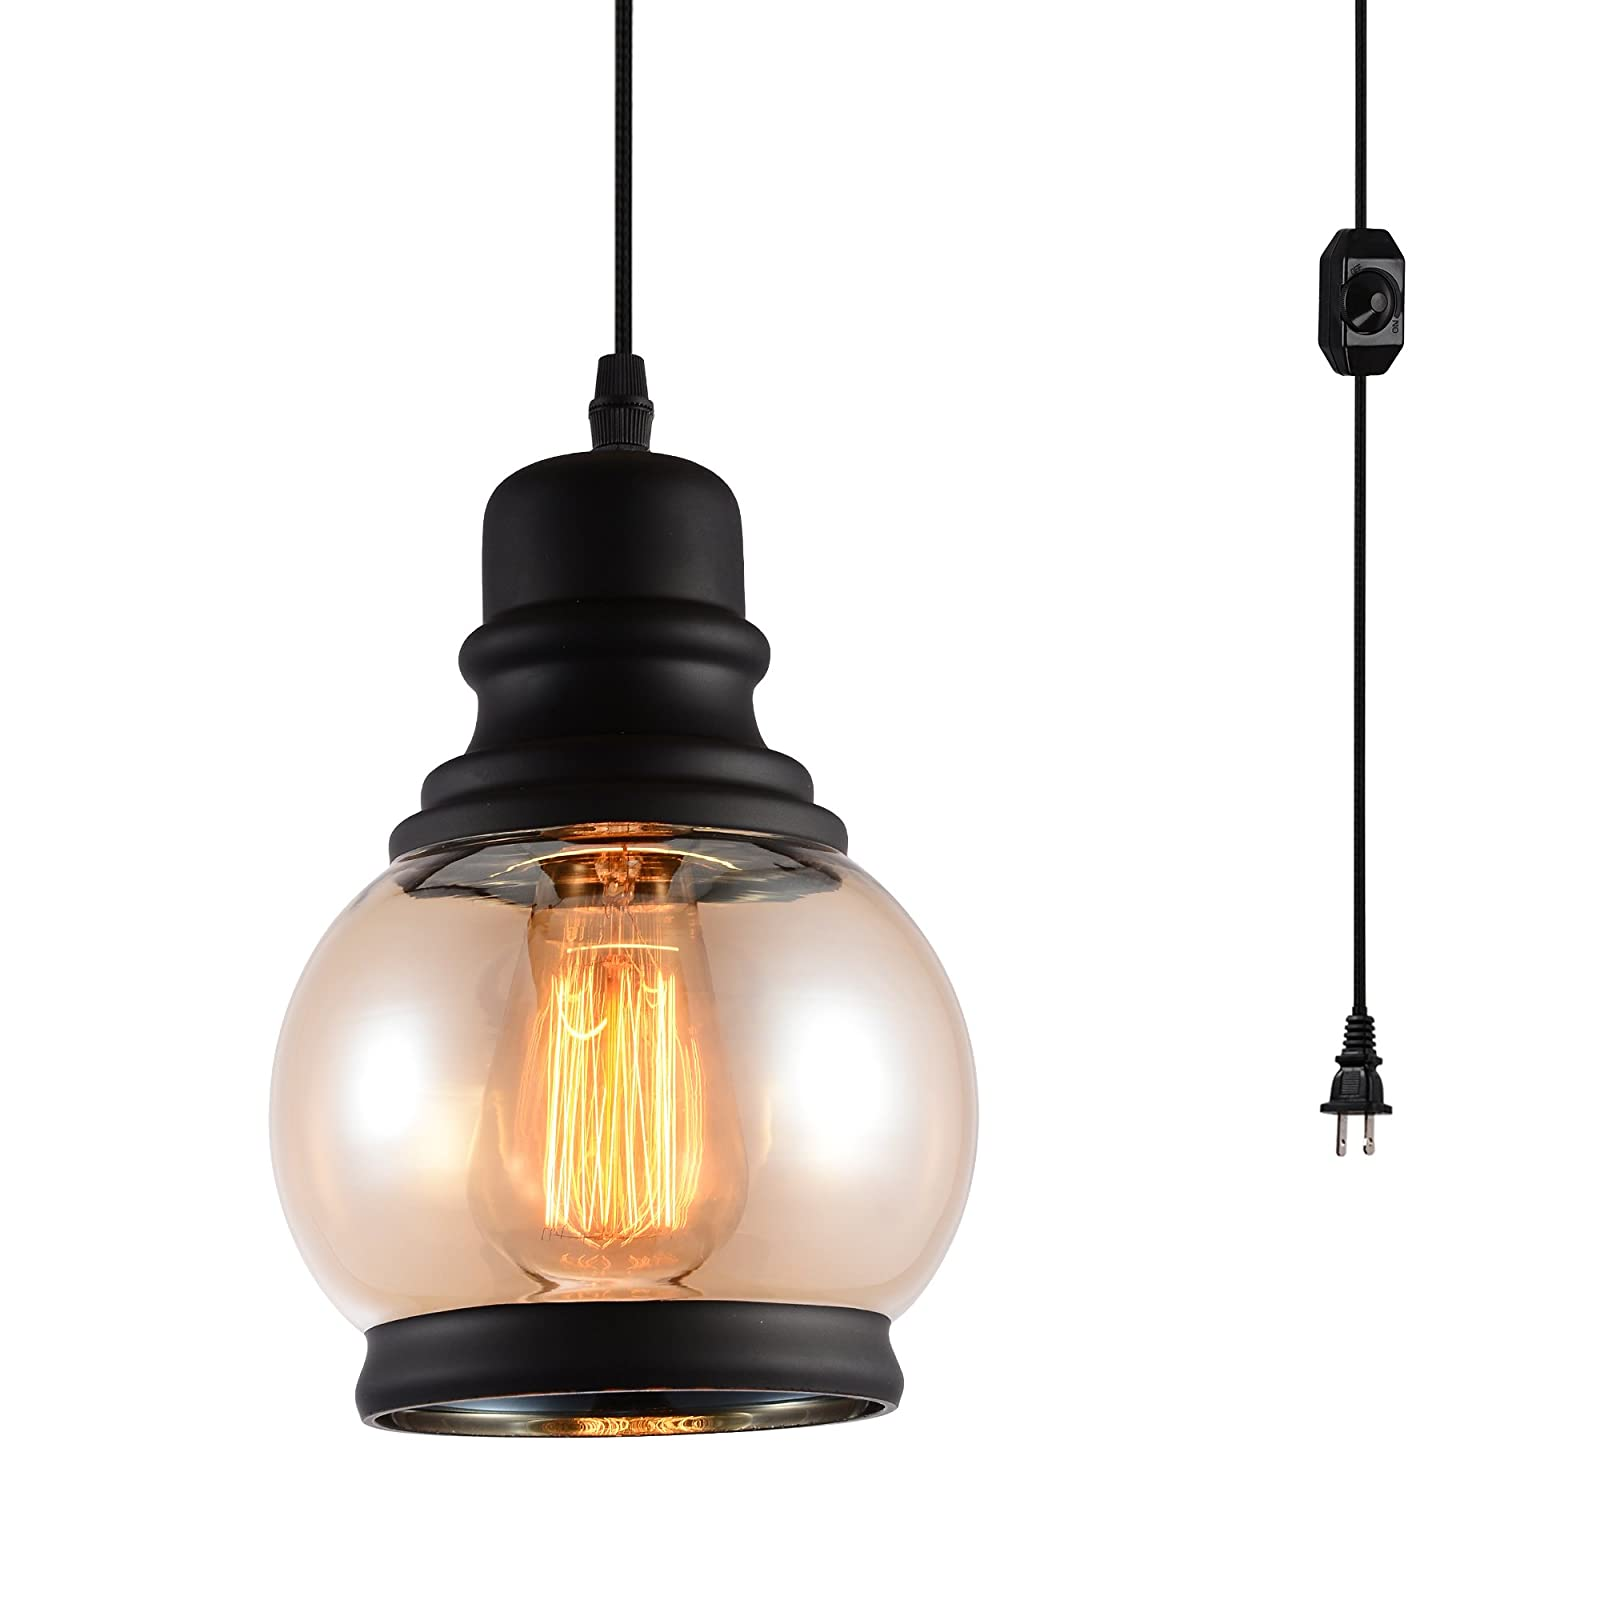 Hmvpl Plug In Pendant Lighting Fixtures With Dimmer Switch And Long Hanging Cord Vintage Glass Swag Chandelier Ceiling Lamp For Kitchen Island Dining Table Bedroom Foyer Entry Hallway Walmart Com Walmart Com